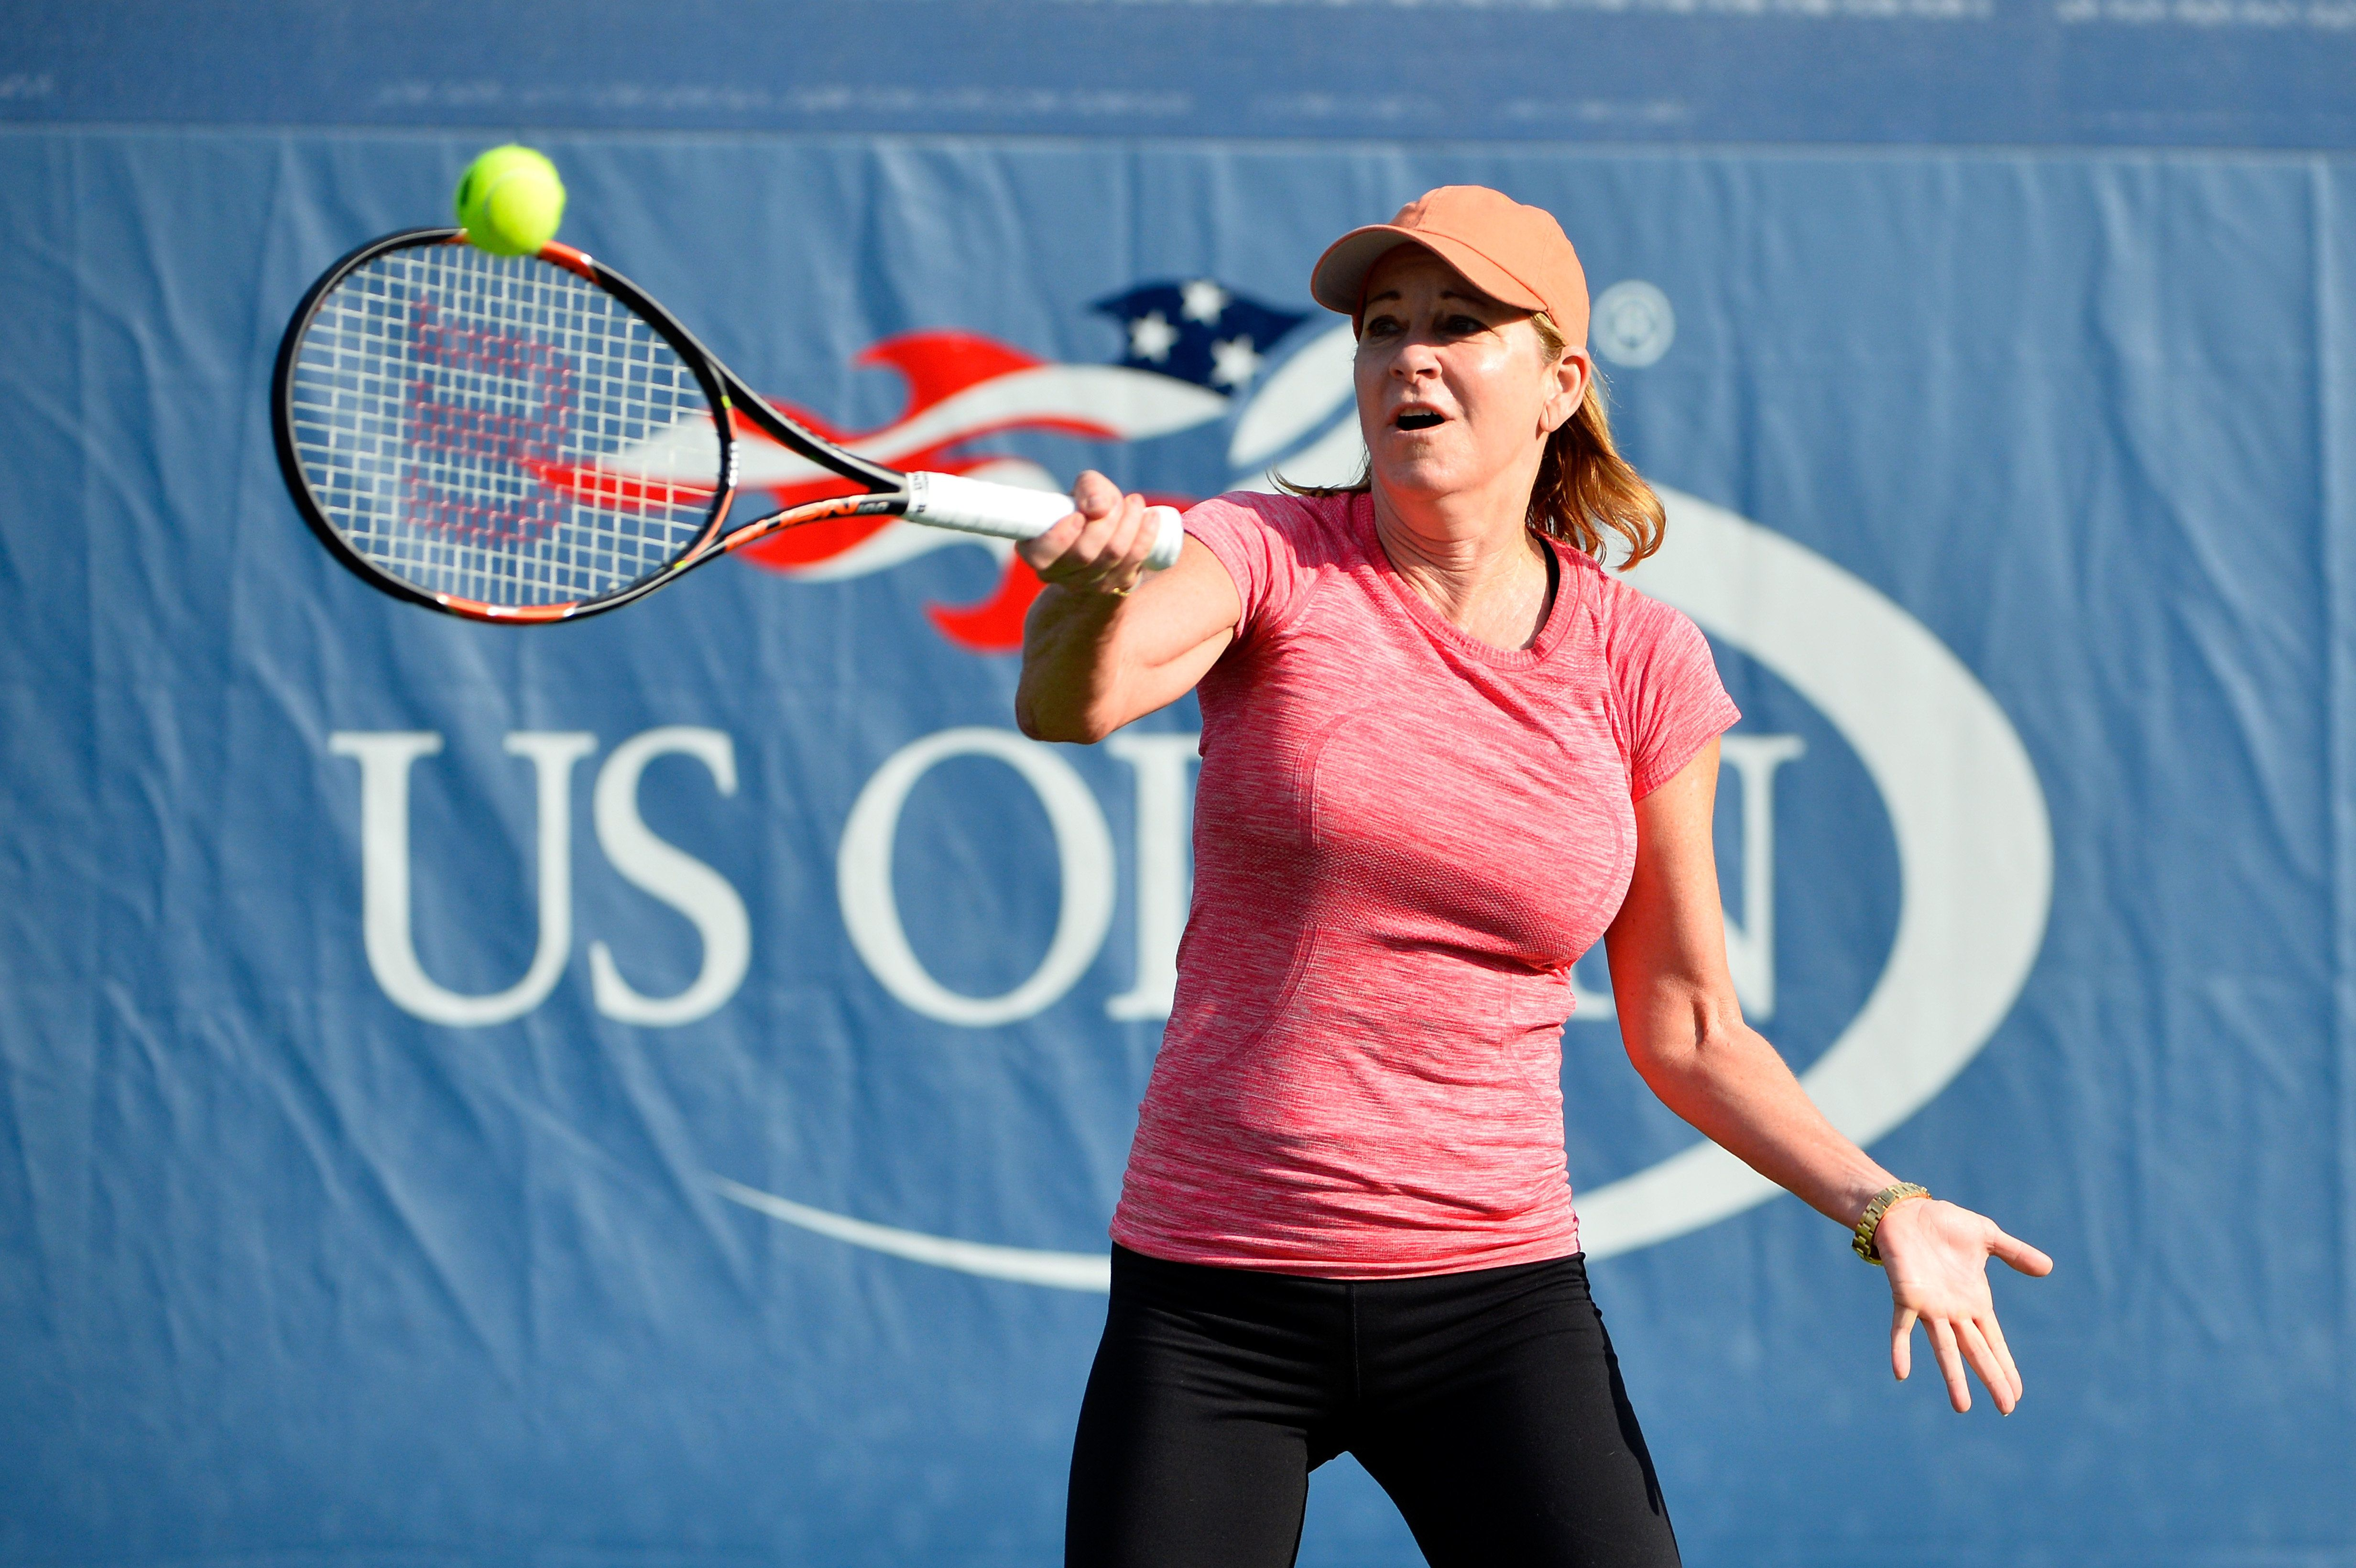 Tennis star Chris Evert got real about her experience with menopause.